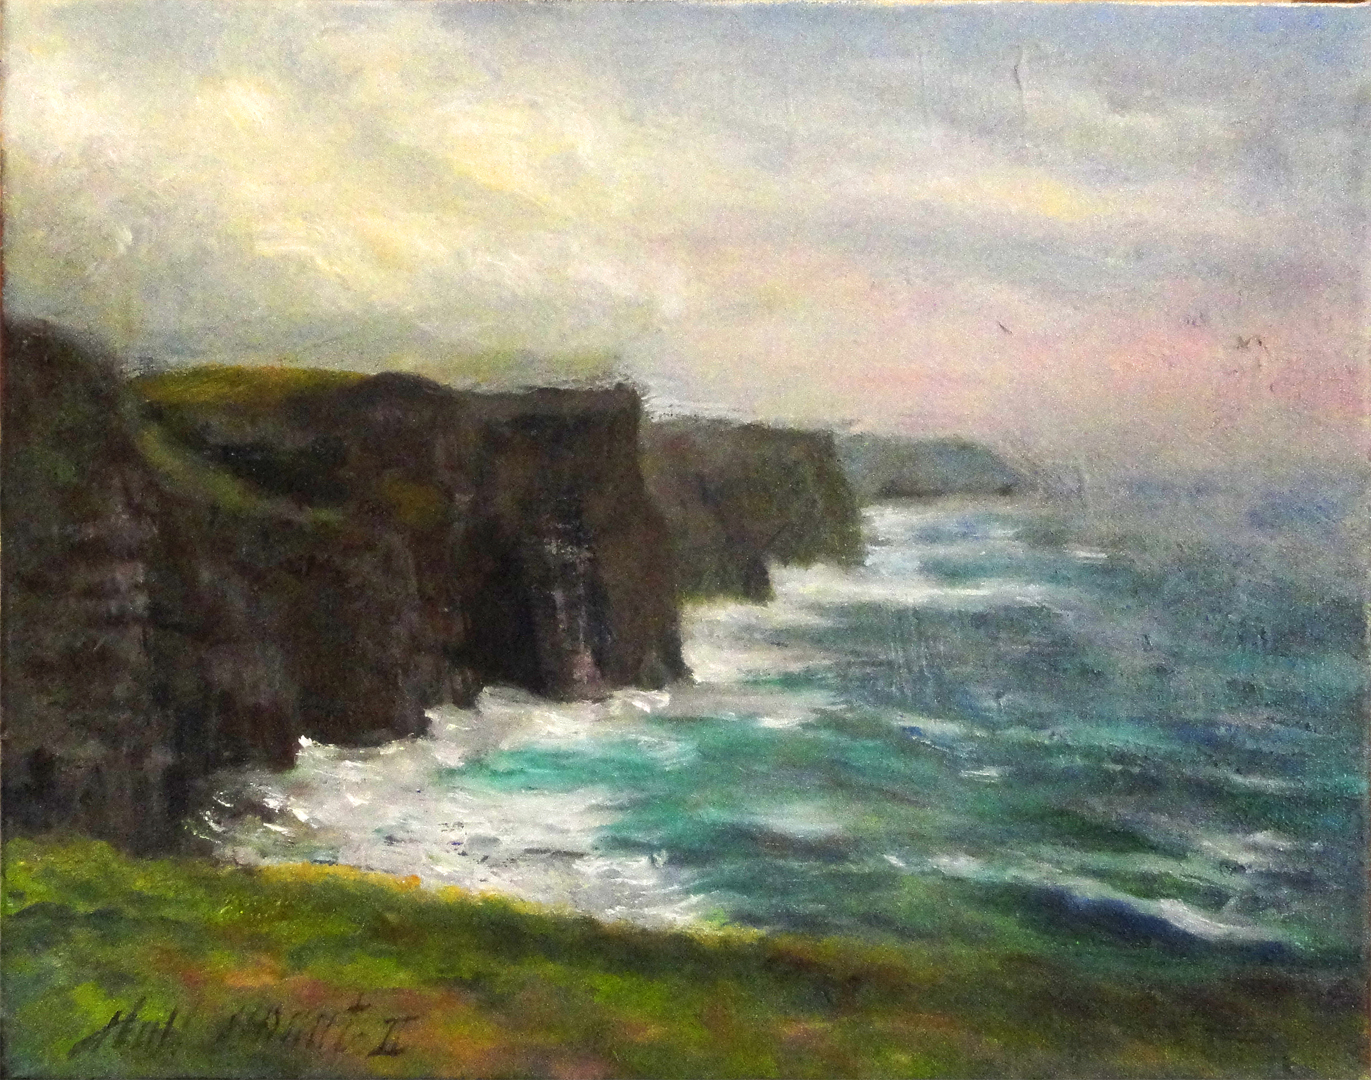 Paintings of ireland for sale for Prints of famous paintings for sale